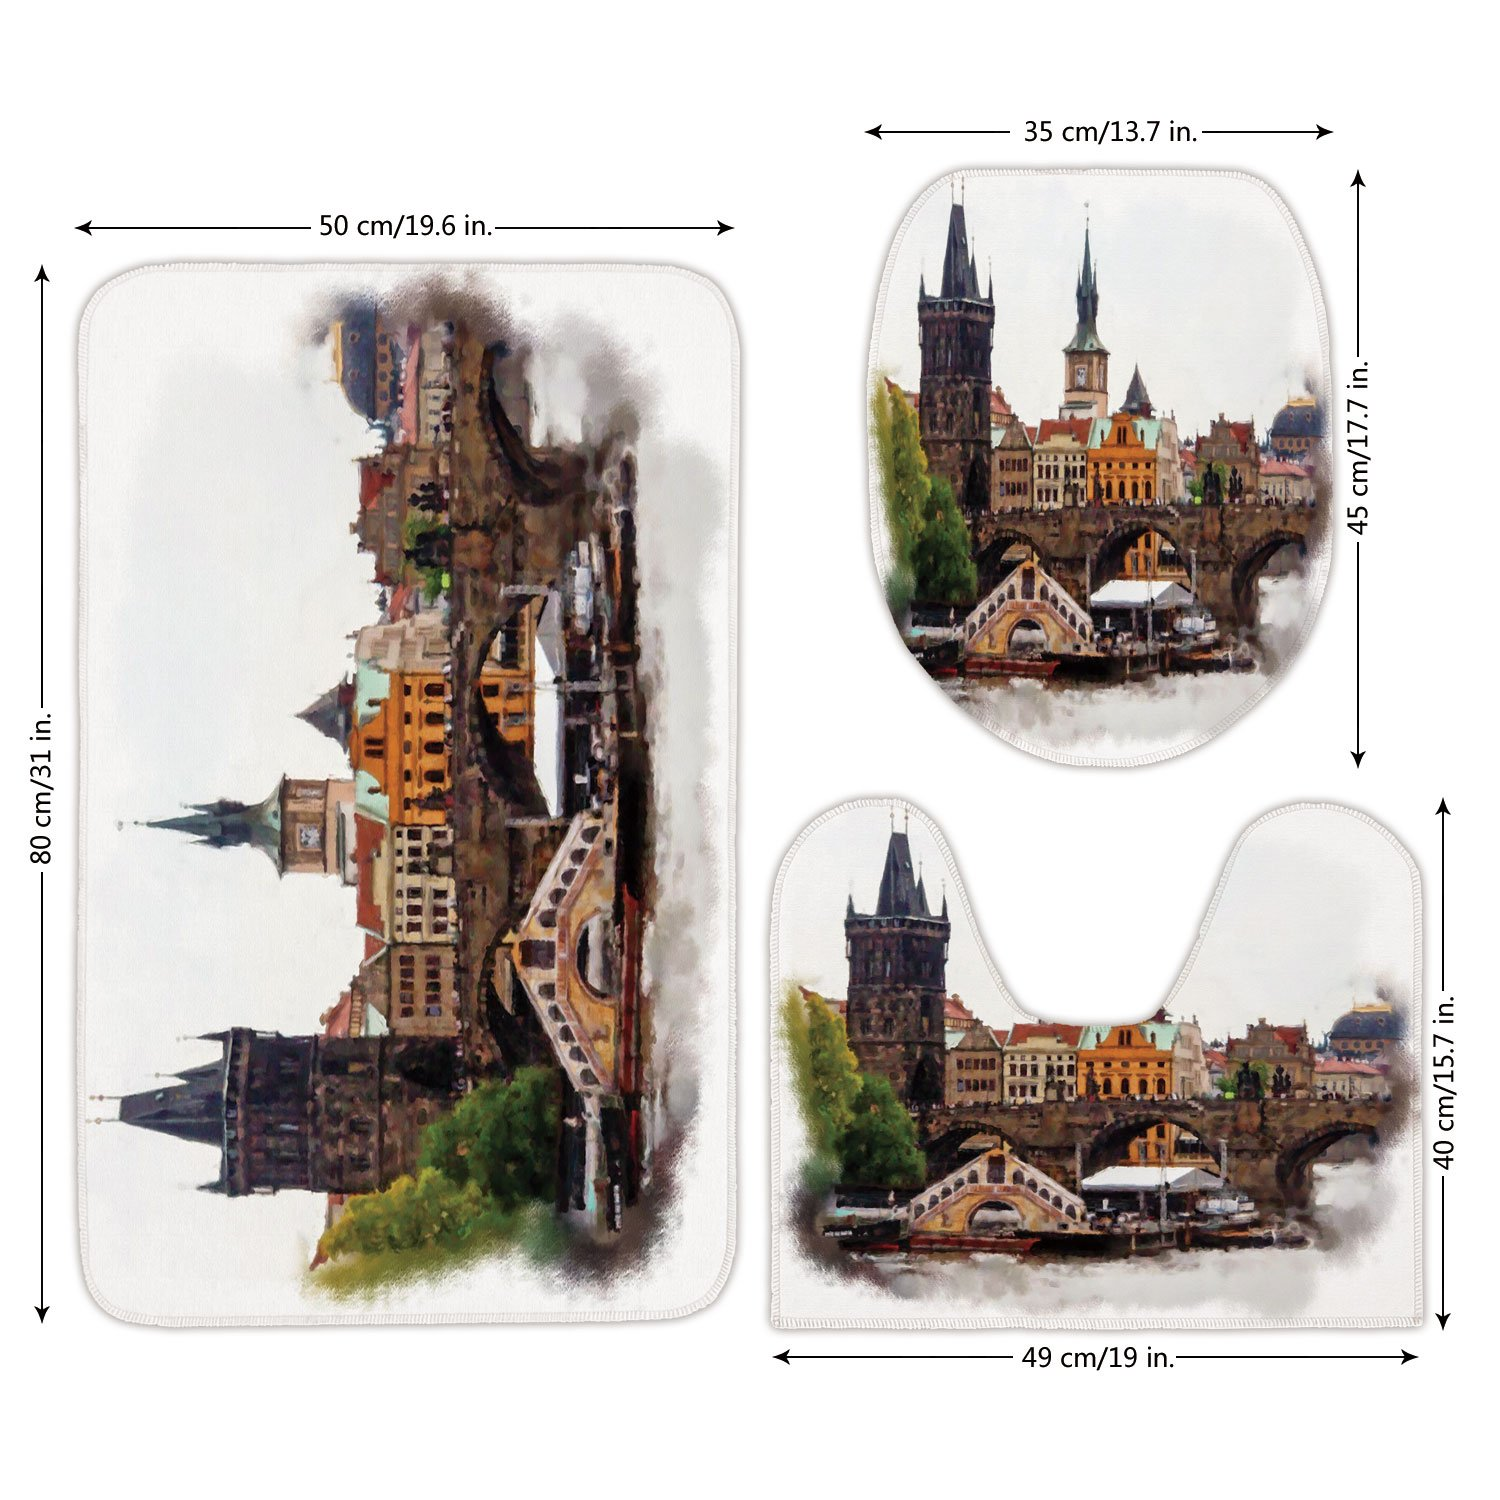 3 Piece Bathroom Mat Set,Scenery Decor,European Country Landscape with Houses and River Watercolored like Print,Multicolor,Bath Mat,Bathroom Carpet Rug,Non-Slip